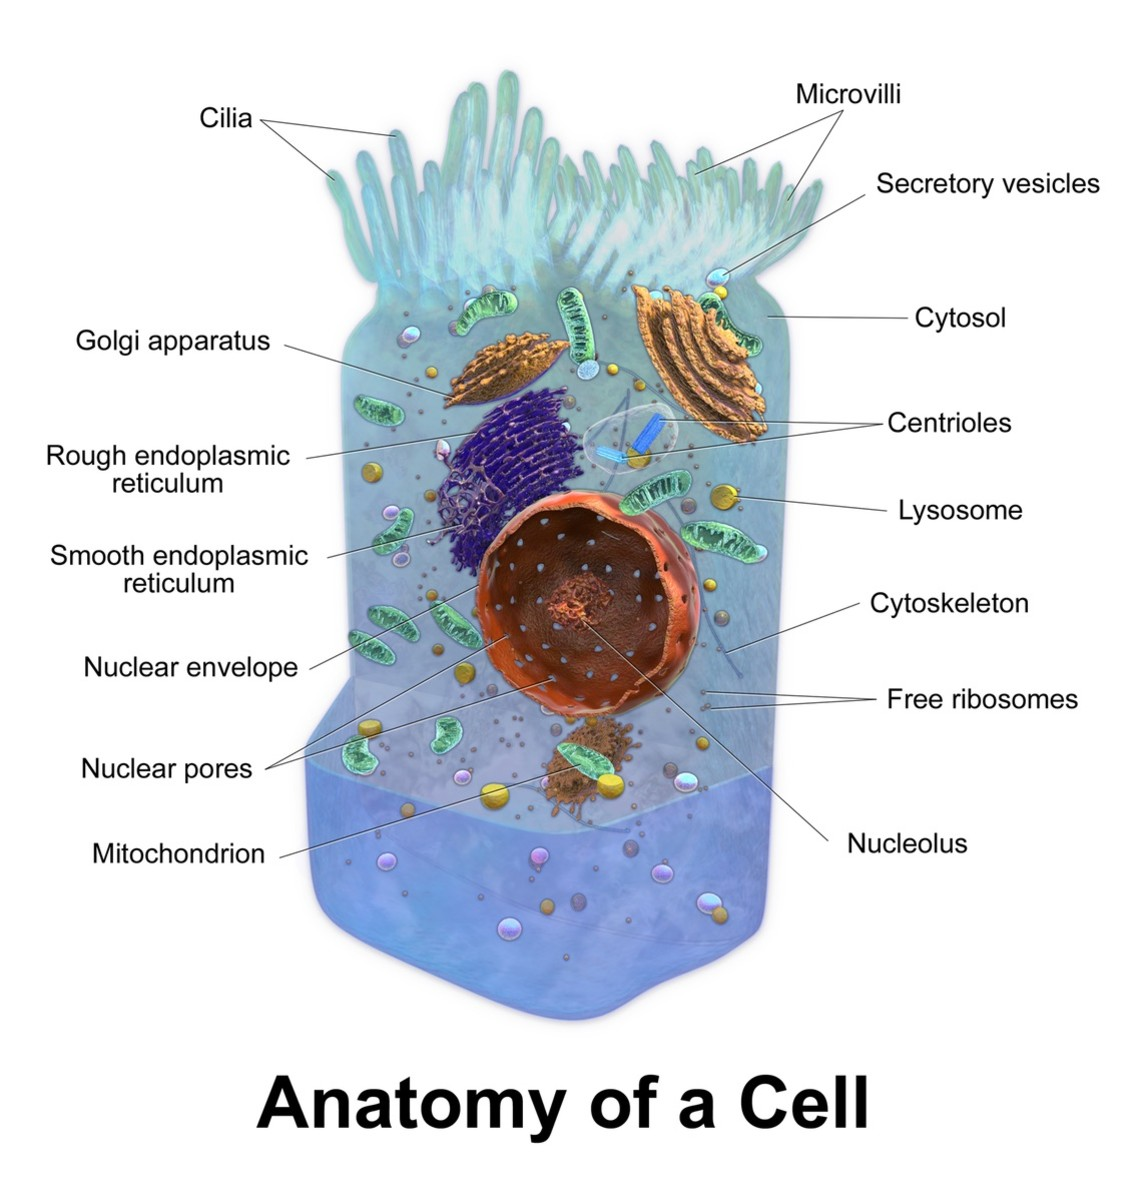 Structure of a cell; not all human cells have cilia or microvilli